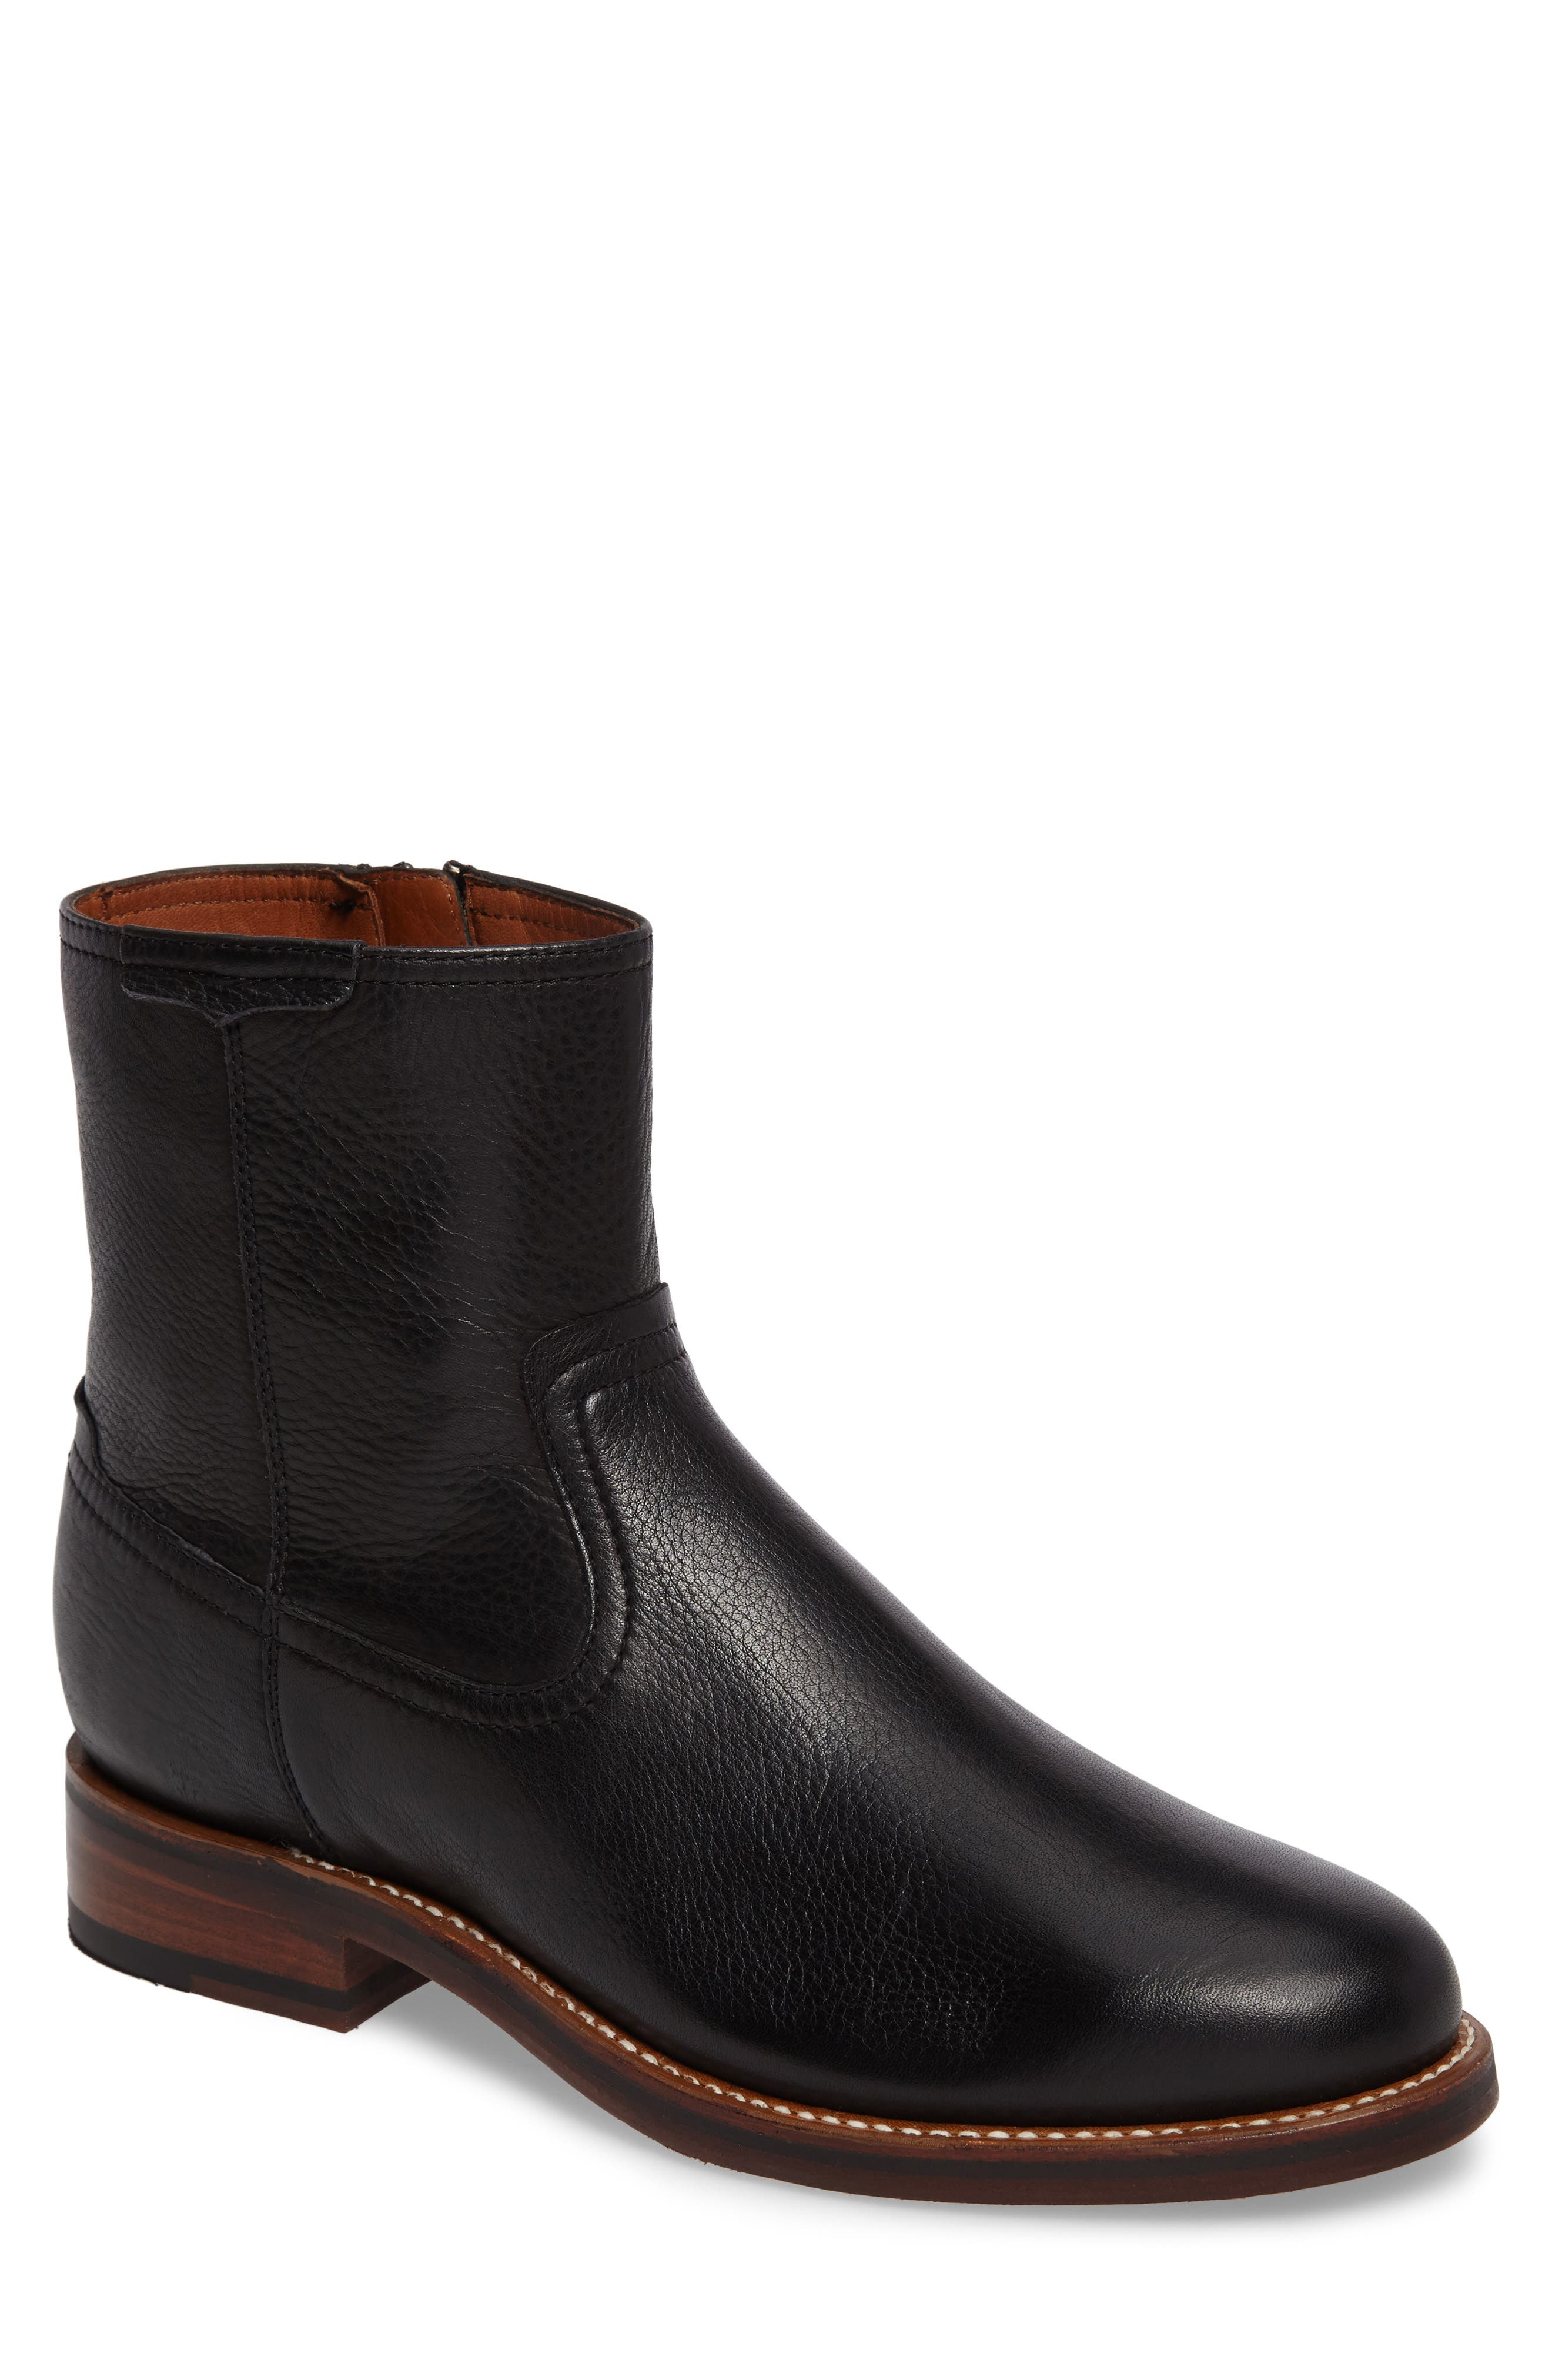 Alternate Image 1 Selected - Ariat Santa Fe Mid Zip Boot (Men)